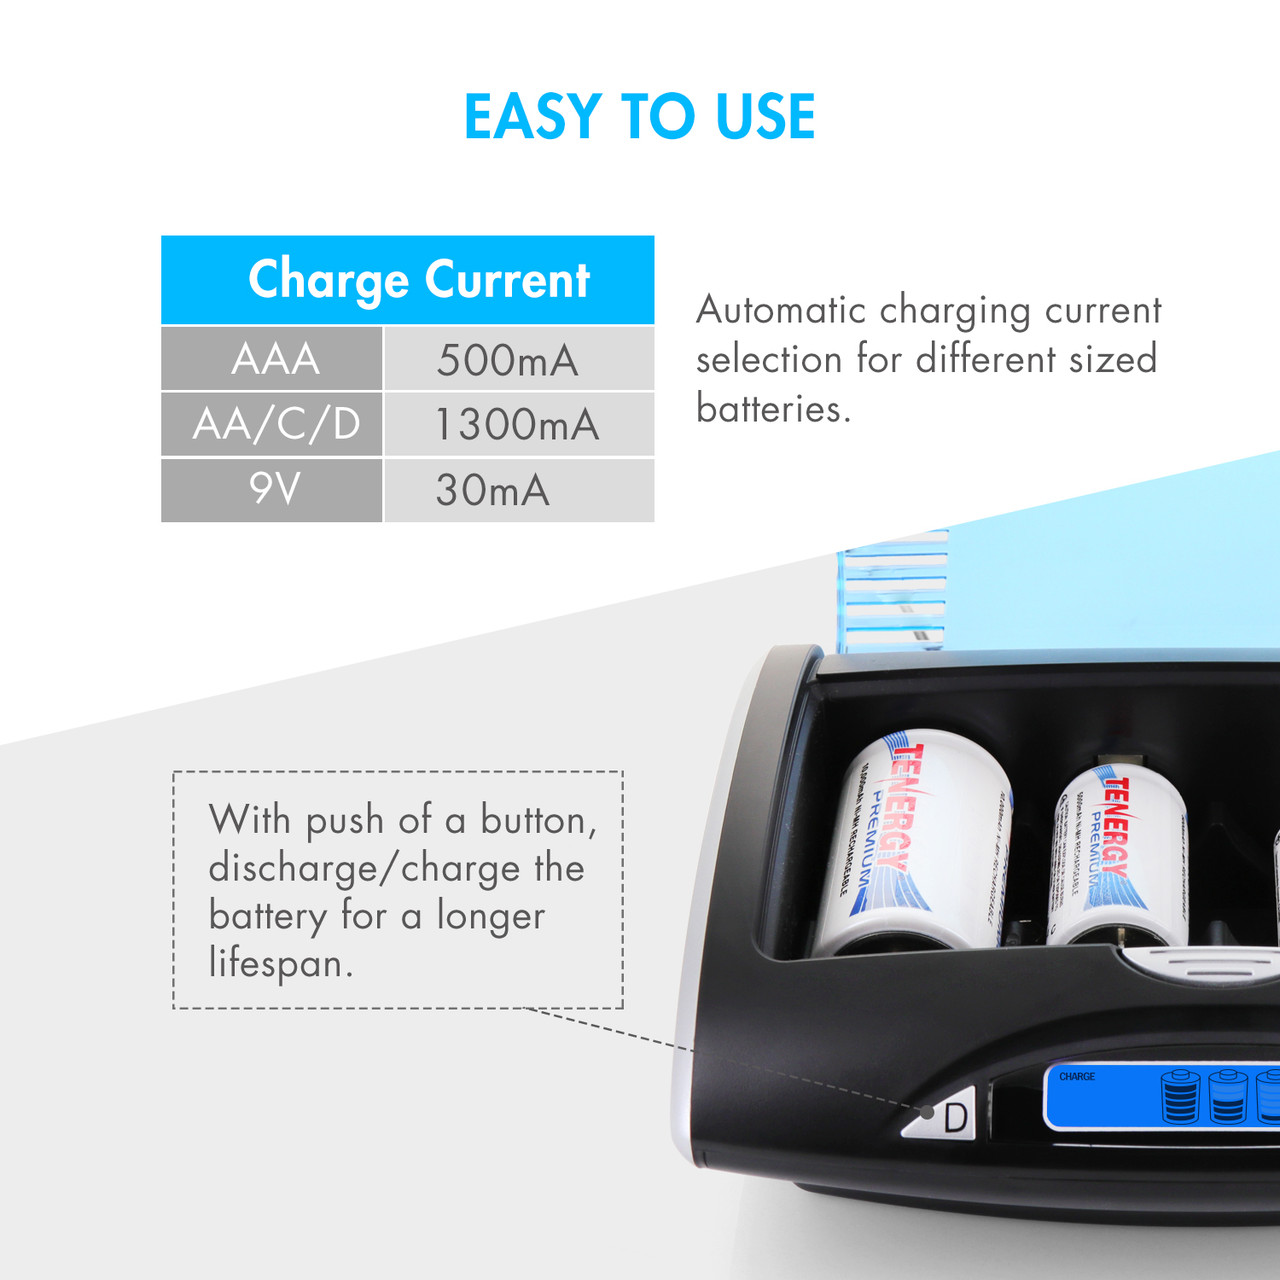 Combo: 4 Pack Premium NiMH Rechargeable C Batteries + Tenergy T9688 Universal LCD Battery Charger